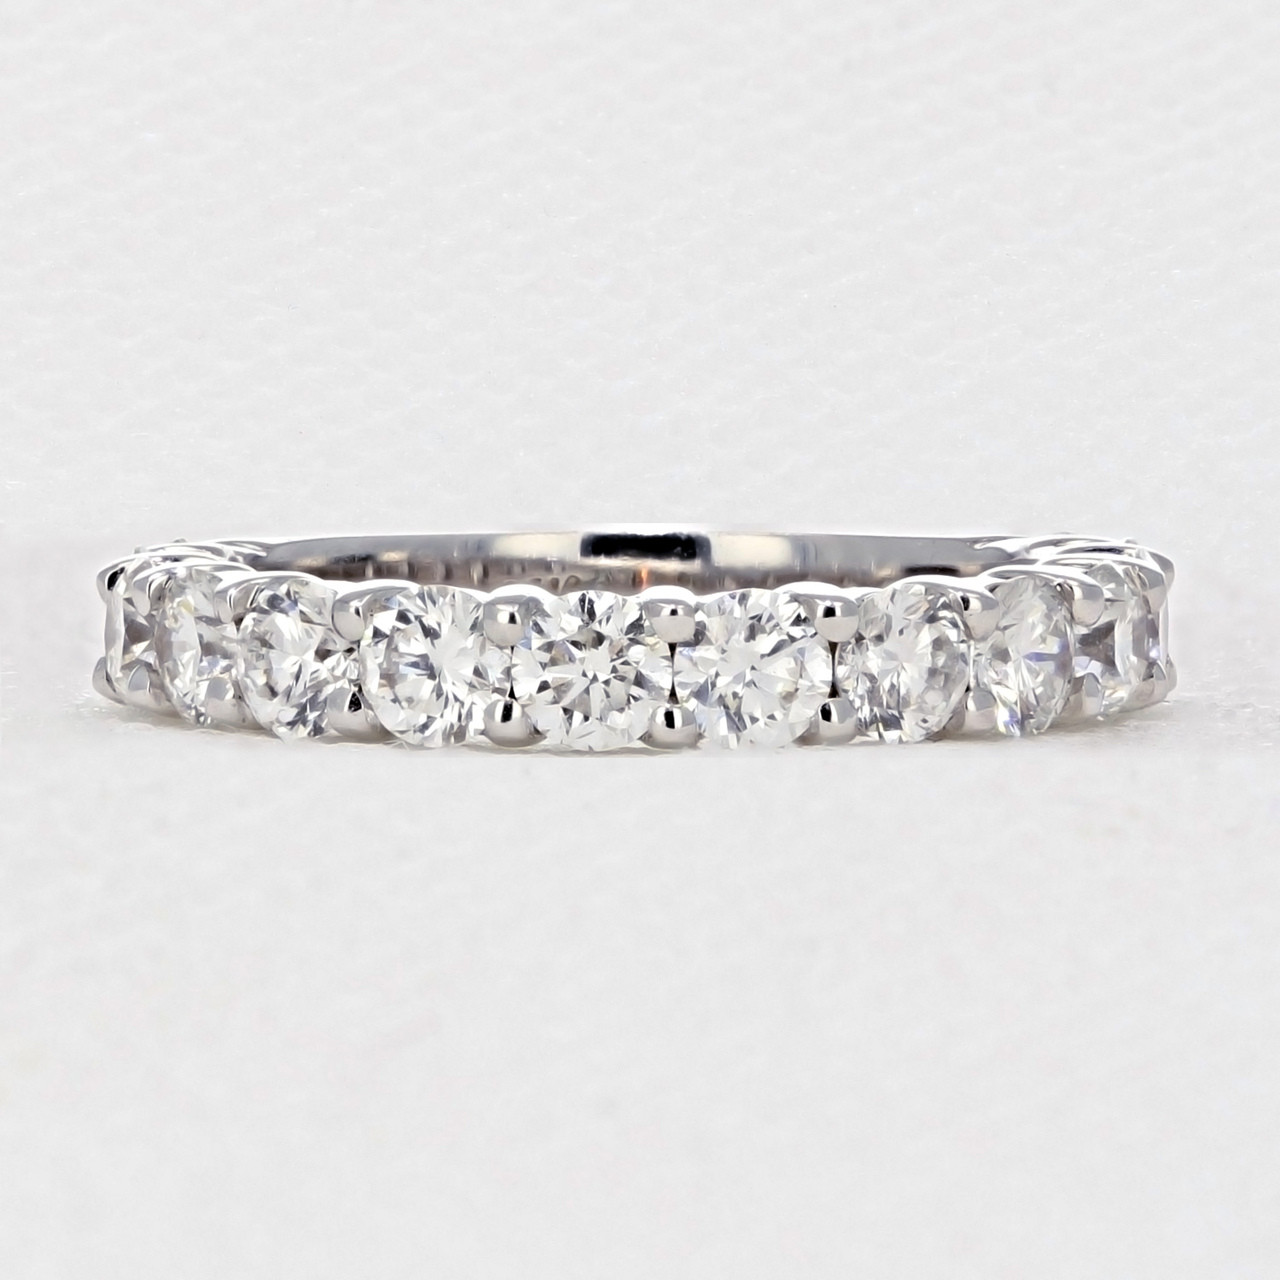 jm rings engagement jewelry edwards prong ring diamond eternity shared